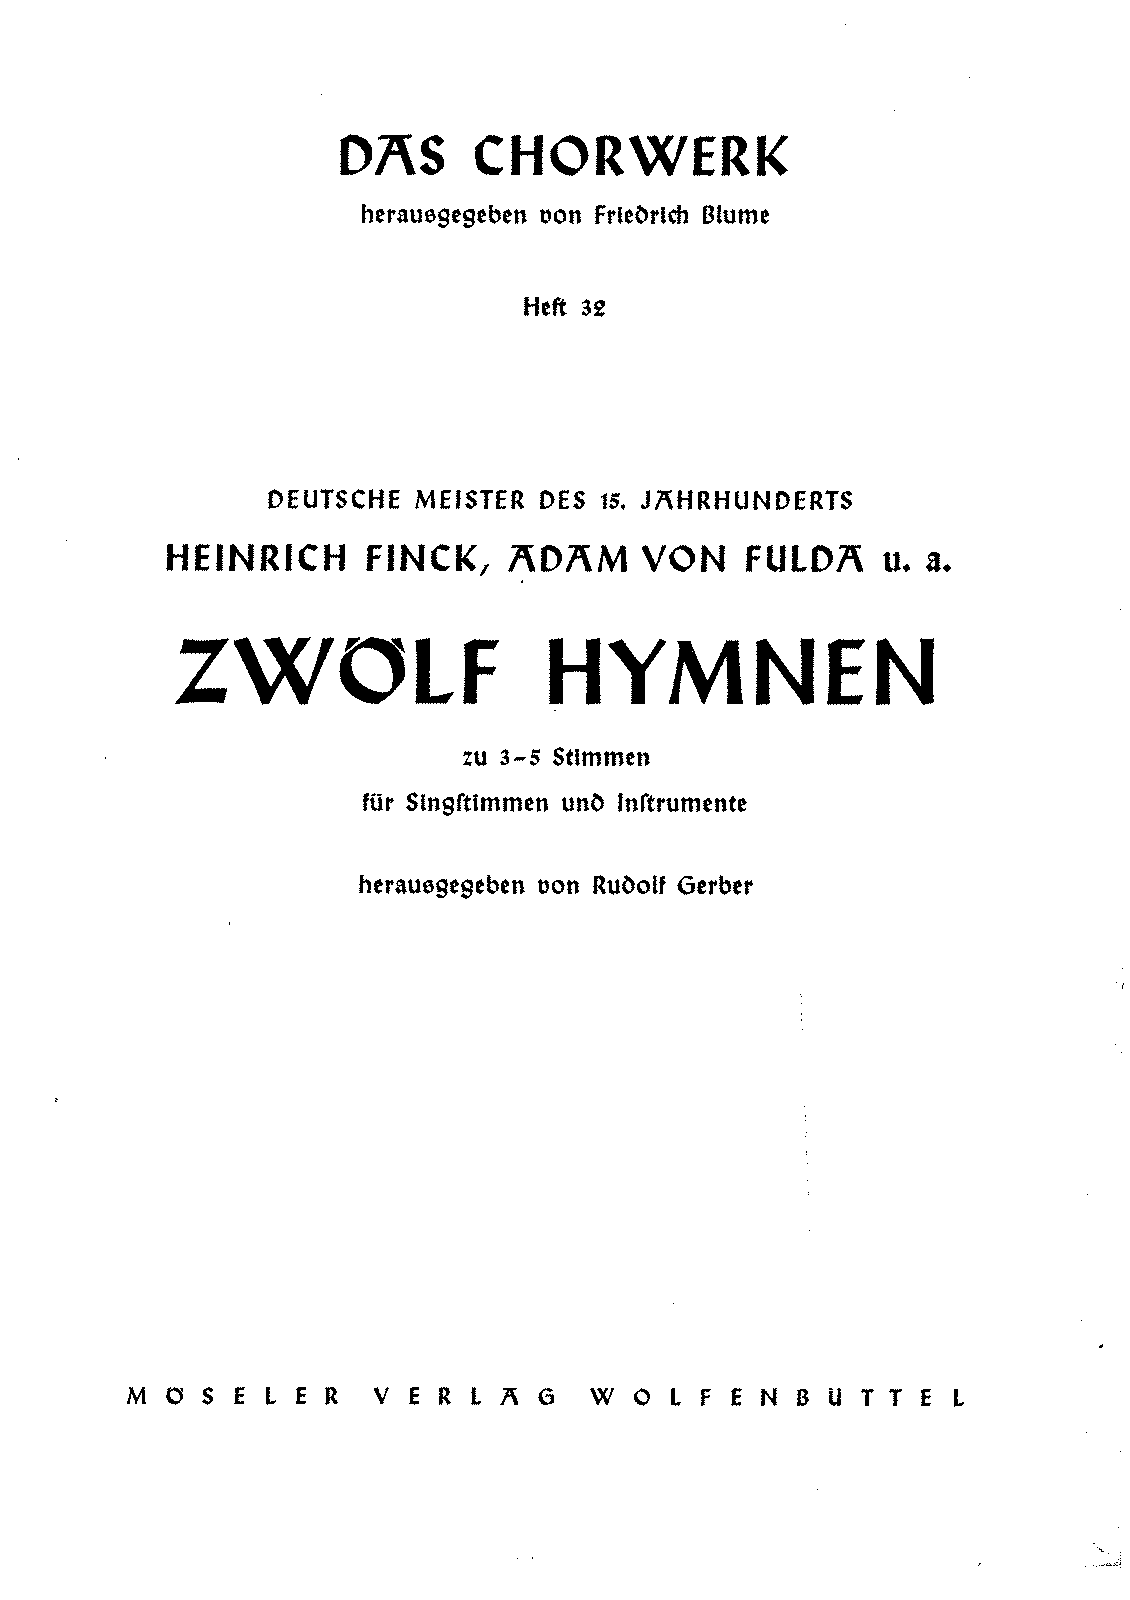 PMLP103292-Das Chorwerk 032 - VA - 12 Hymns from german masters of 15th Century.pdf